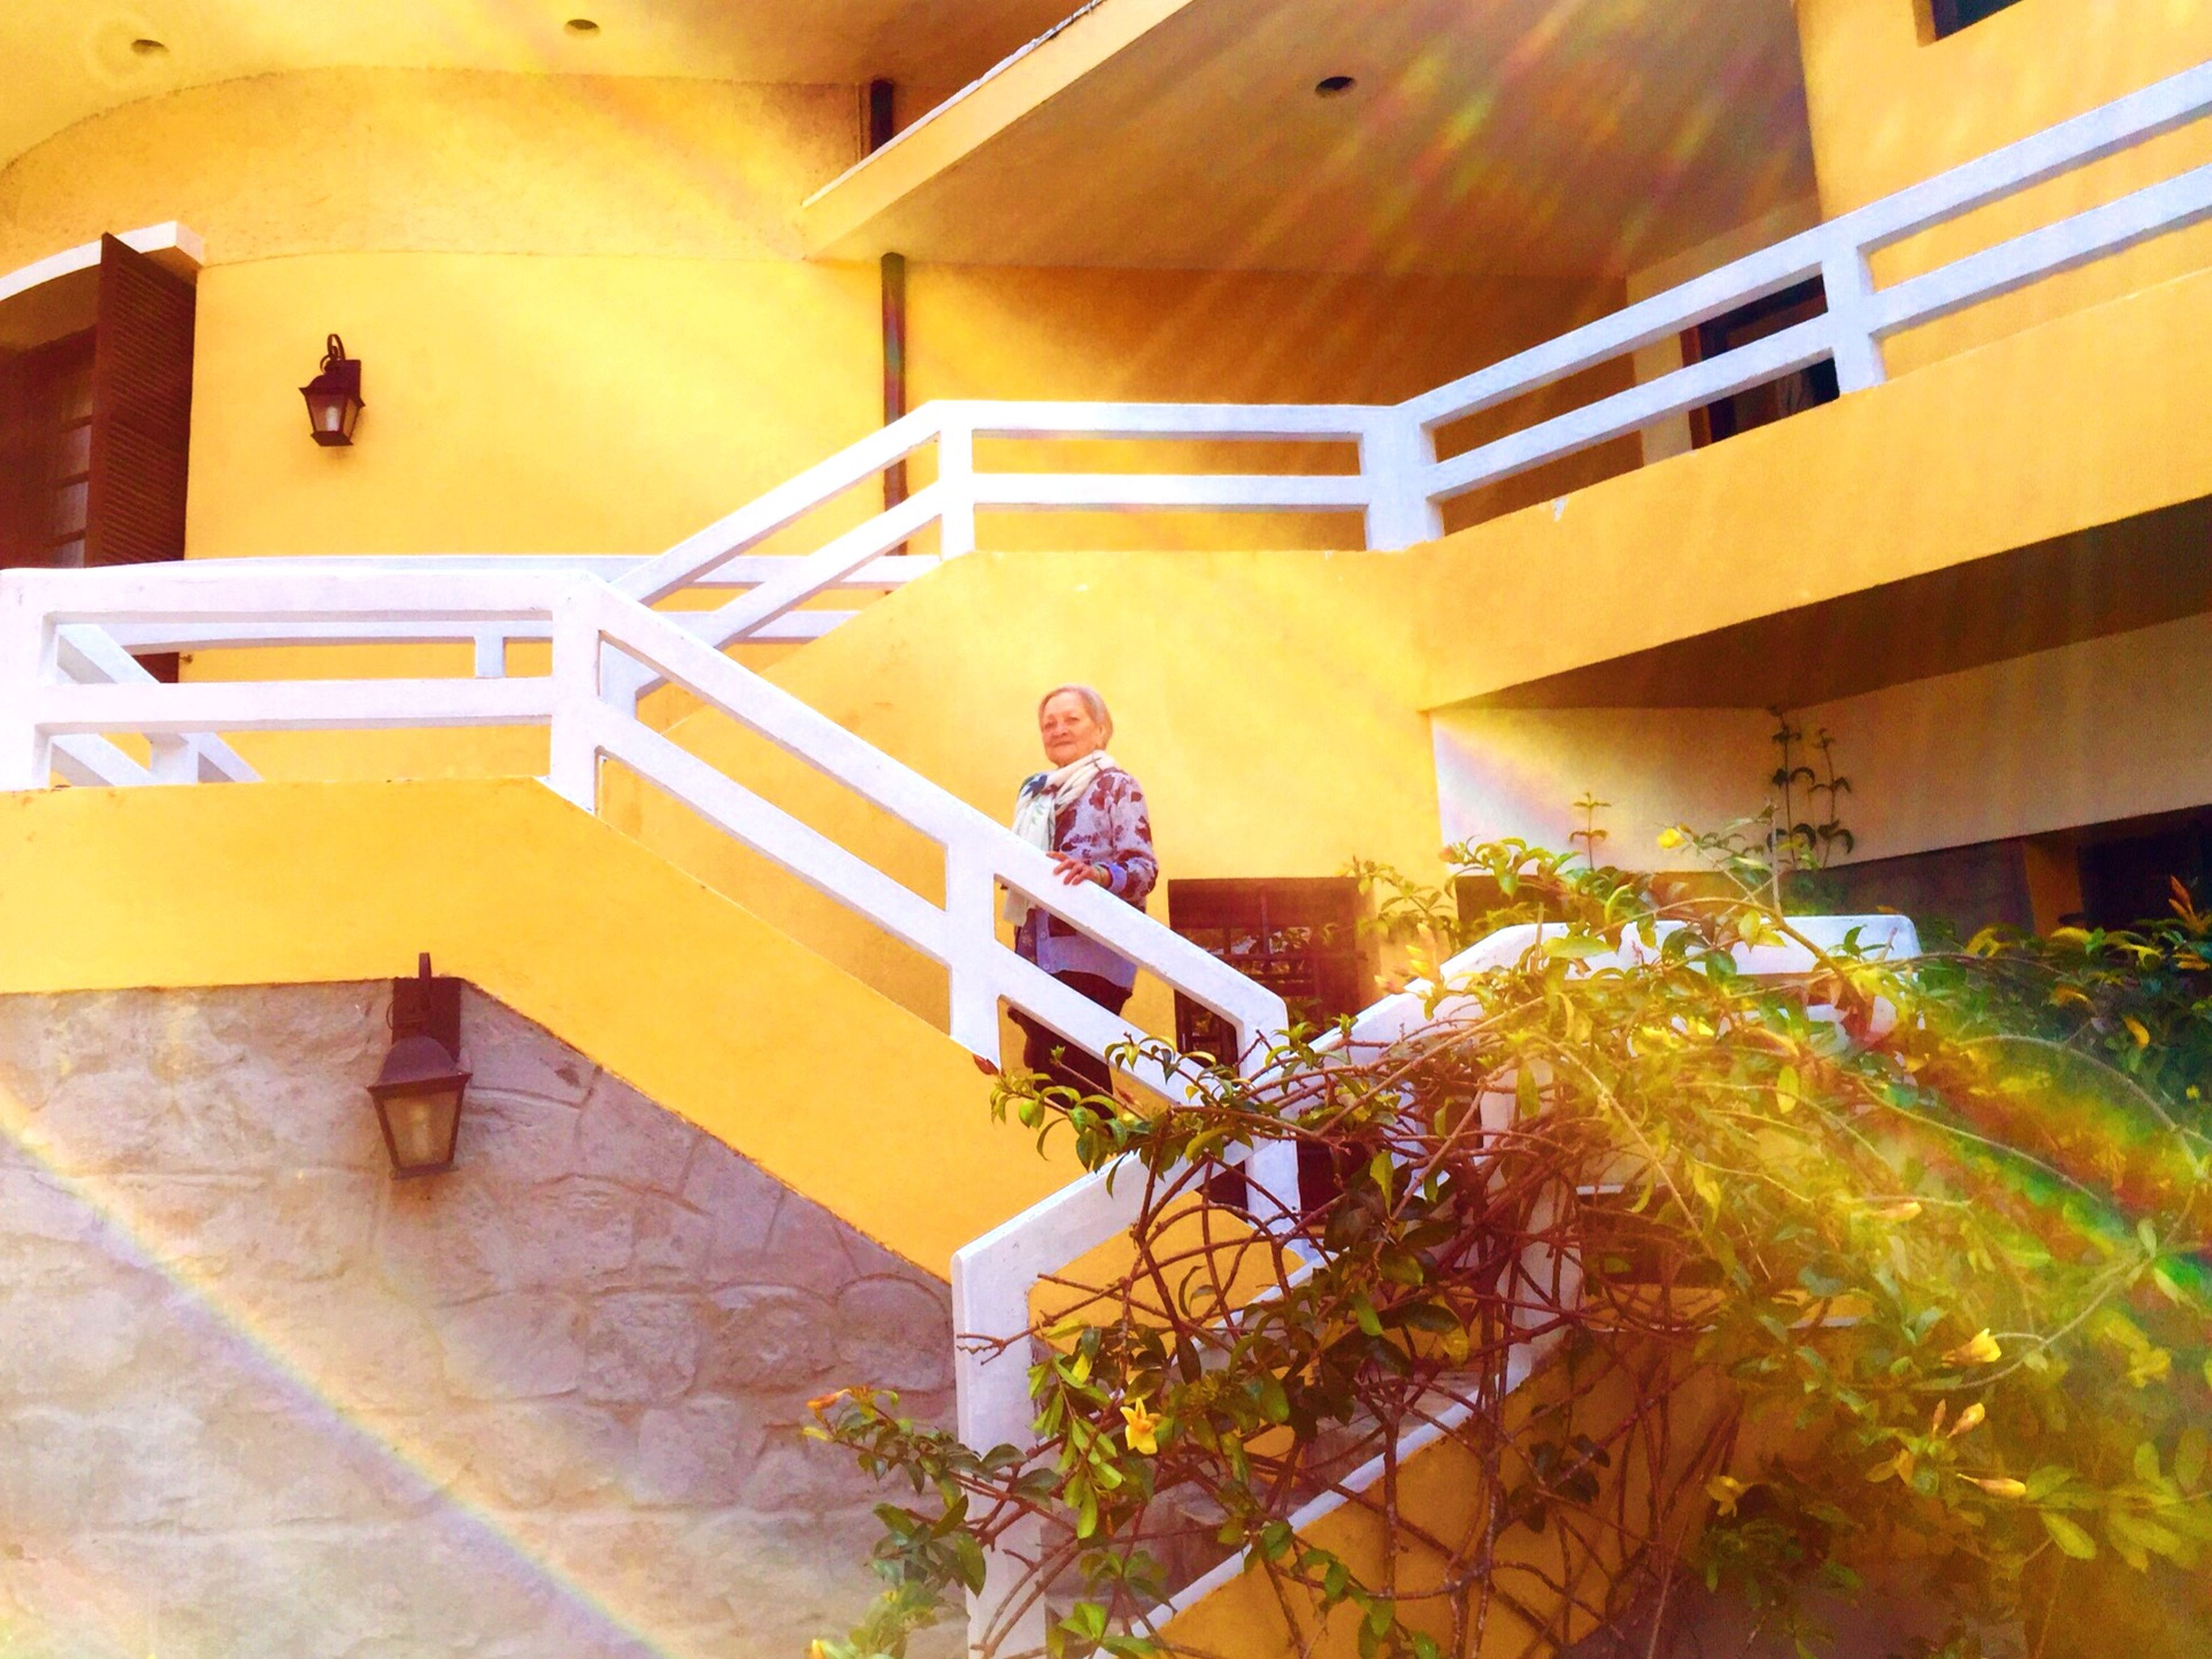 architecture, built structure, indoors, yellow, building exterior, steps and staircases, steps, staircase, building, house, wall - building feature, railing, ceiling, high angle view, lighting equipment, sunlight, day, no people, illuminated, low angle view